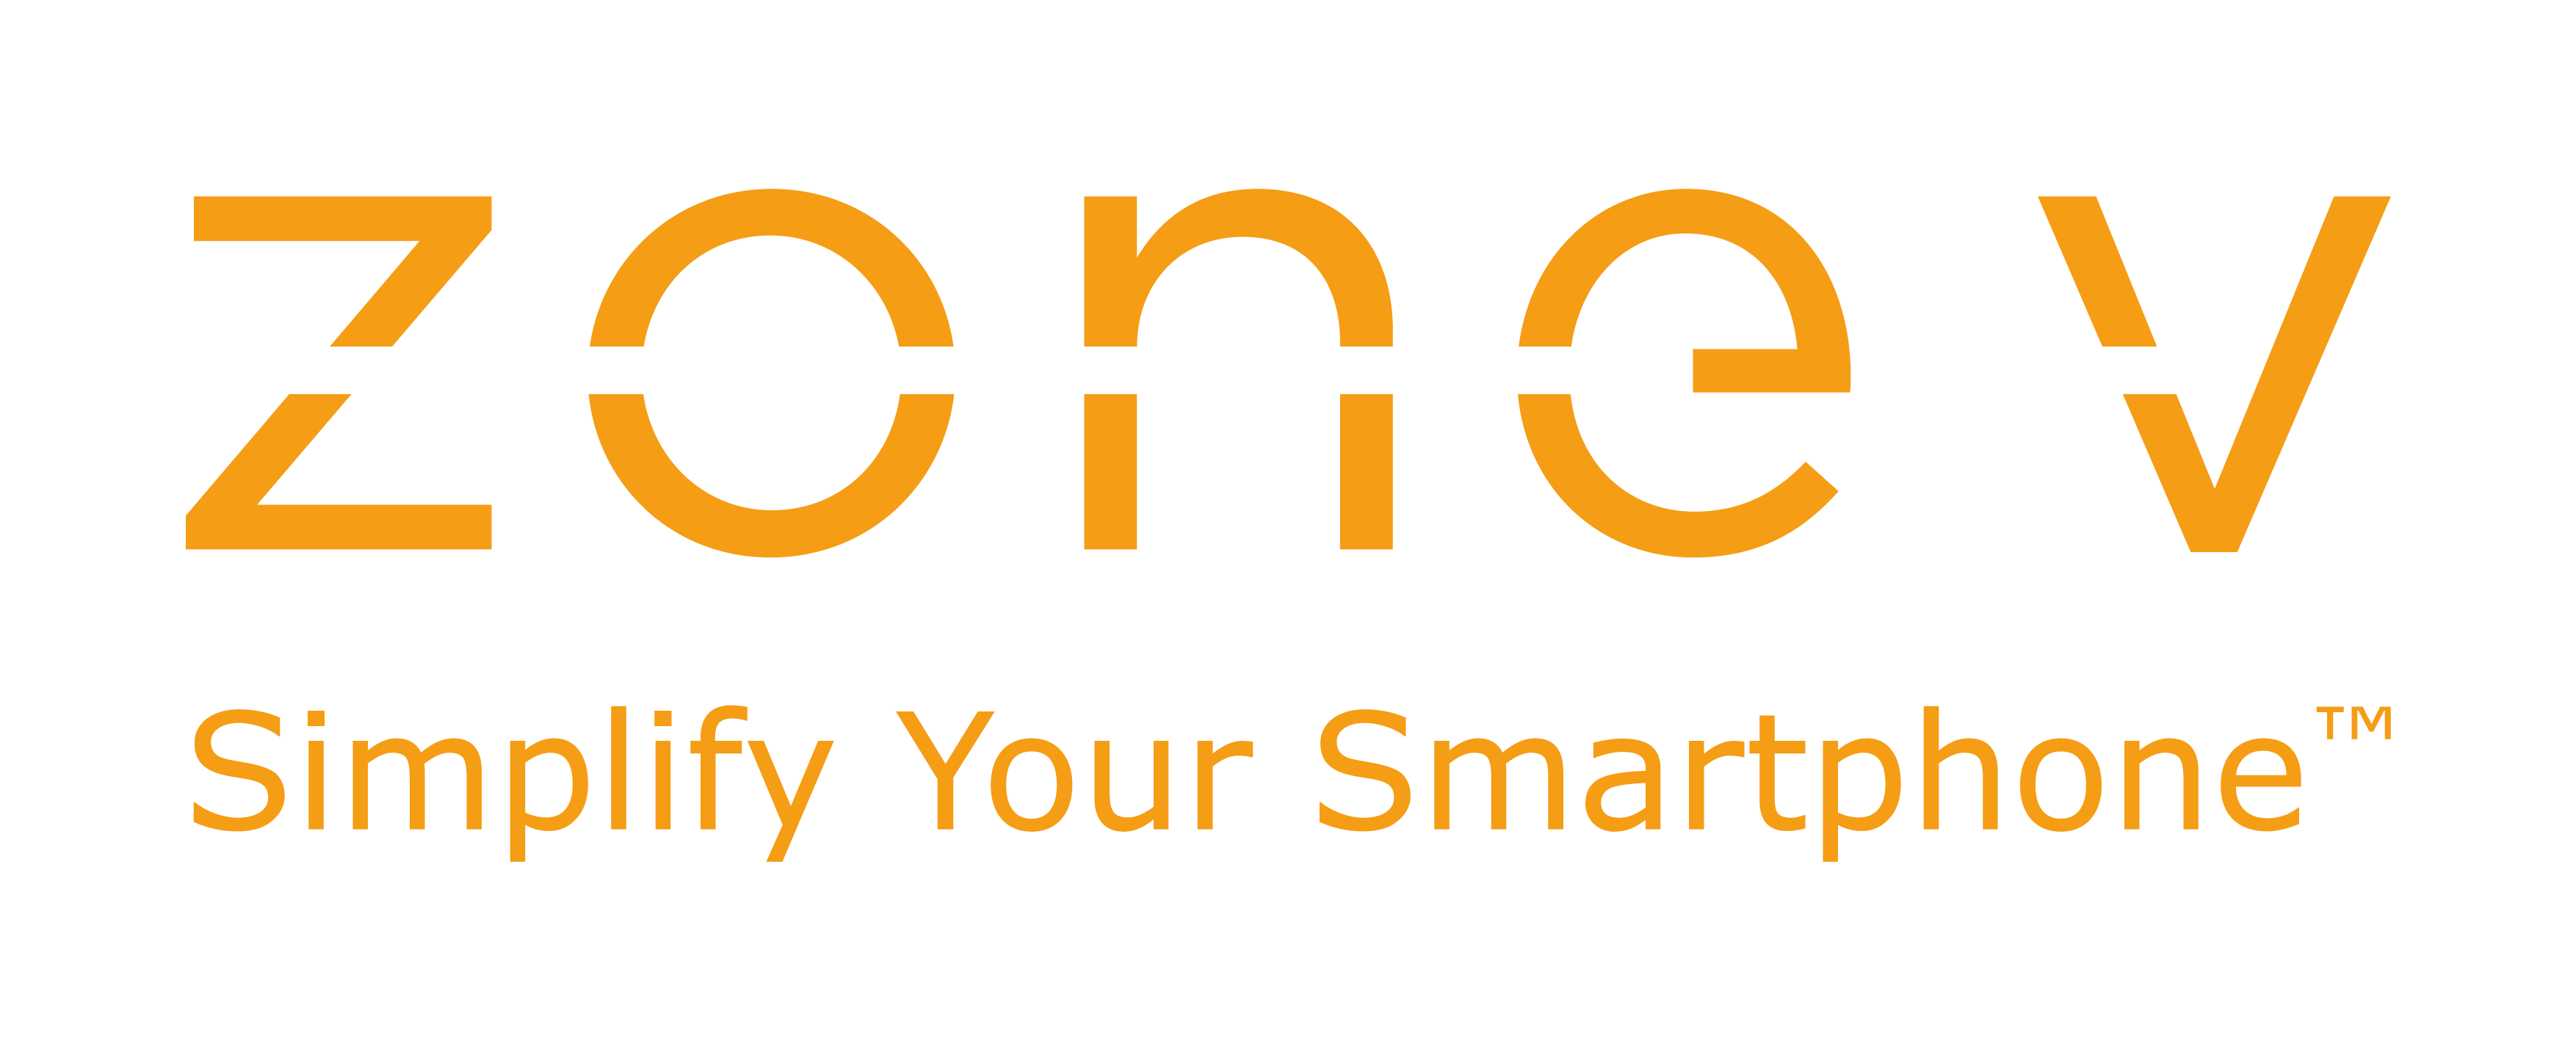 Zone V Simplify Your Smartphone logo